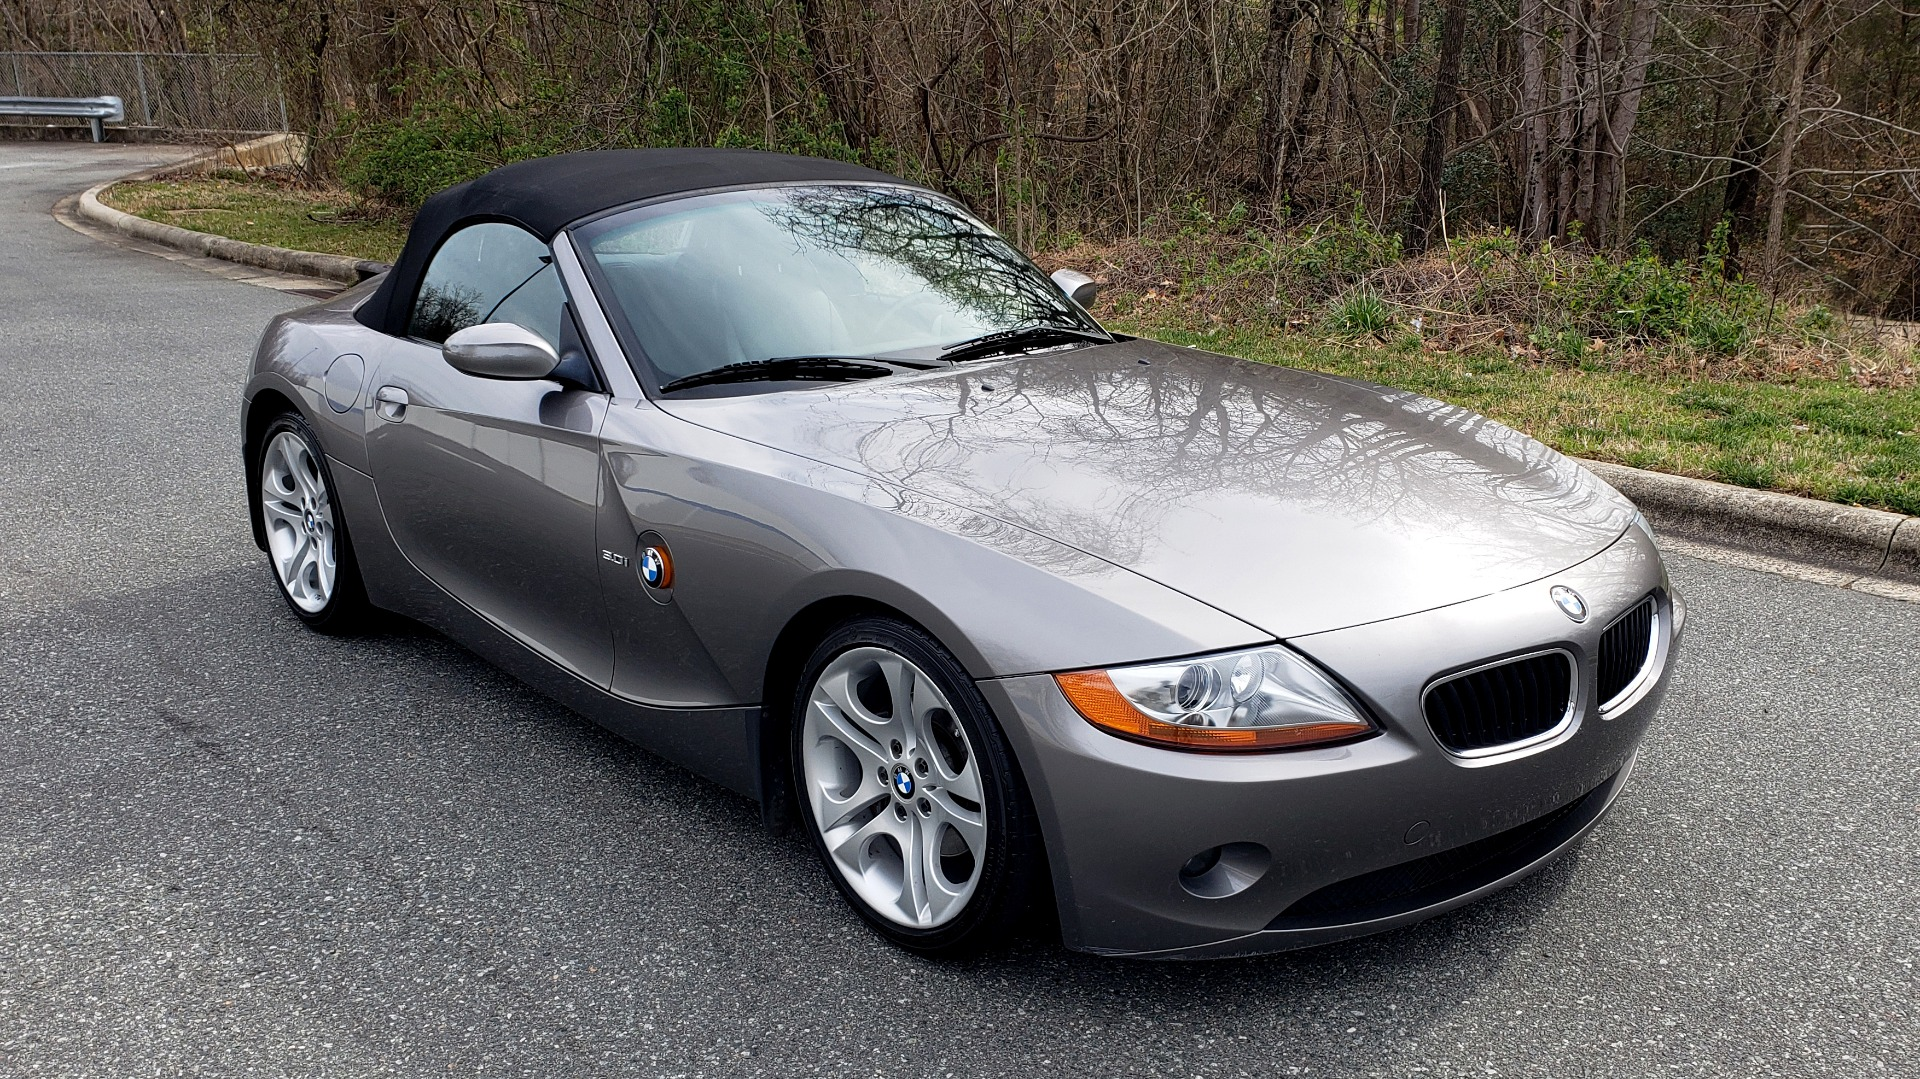 Used 2003 BMW Z4 3.0i ROADSTER / 6-SPD MAN / PREMIUM PKG / SPORT PKG / HTD STS for sale Sold at Formula Imports in Charlotte NC 28227 9